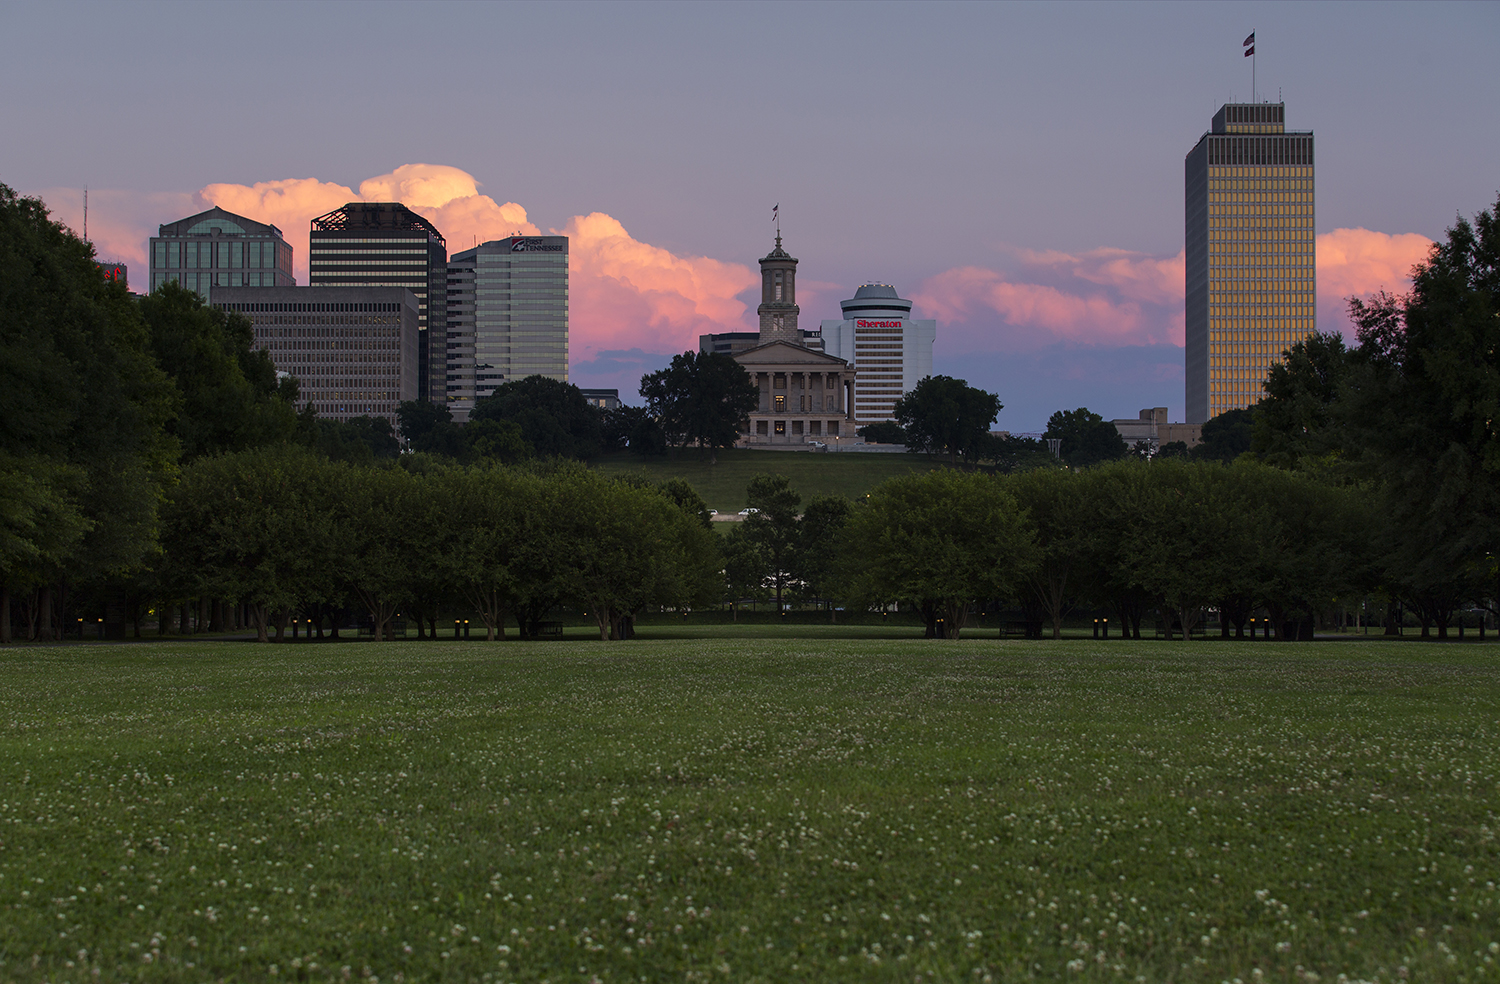 Tennessee State Capital building at sunset.